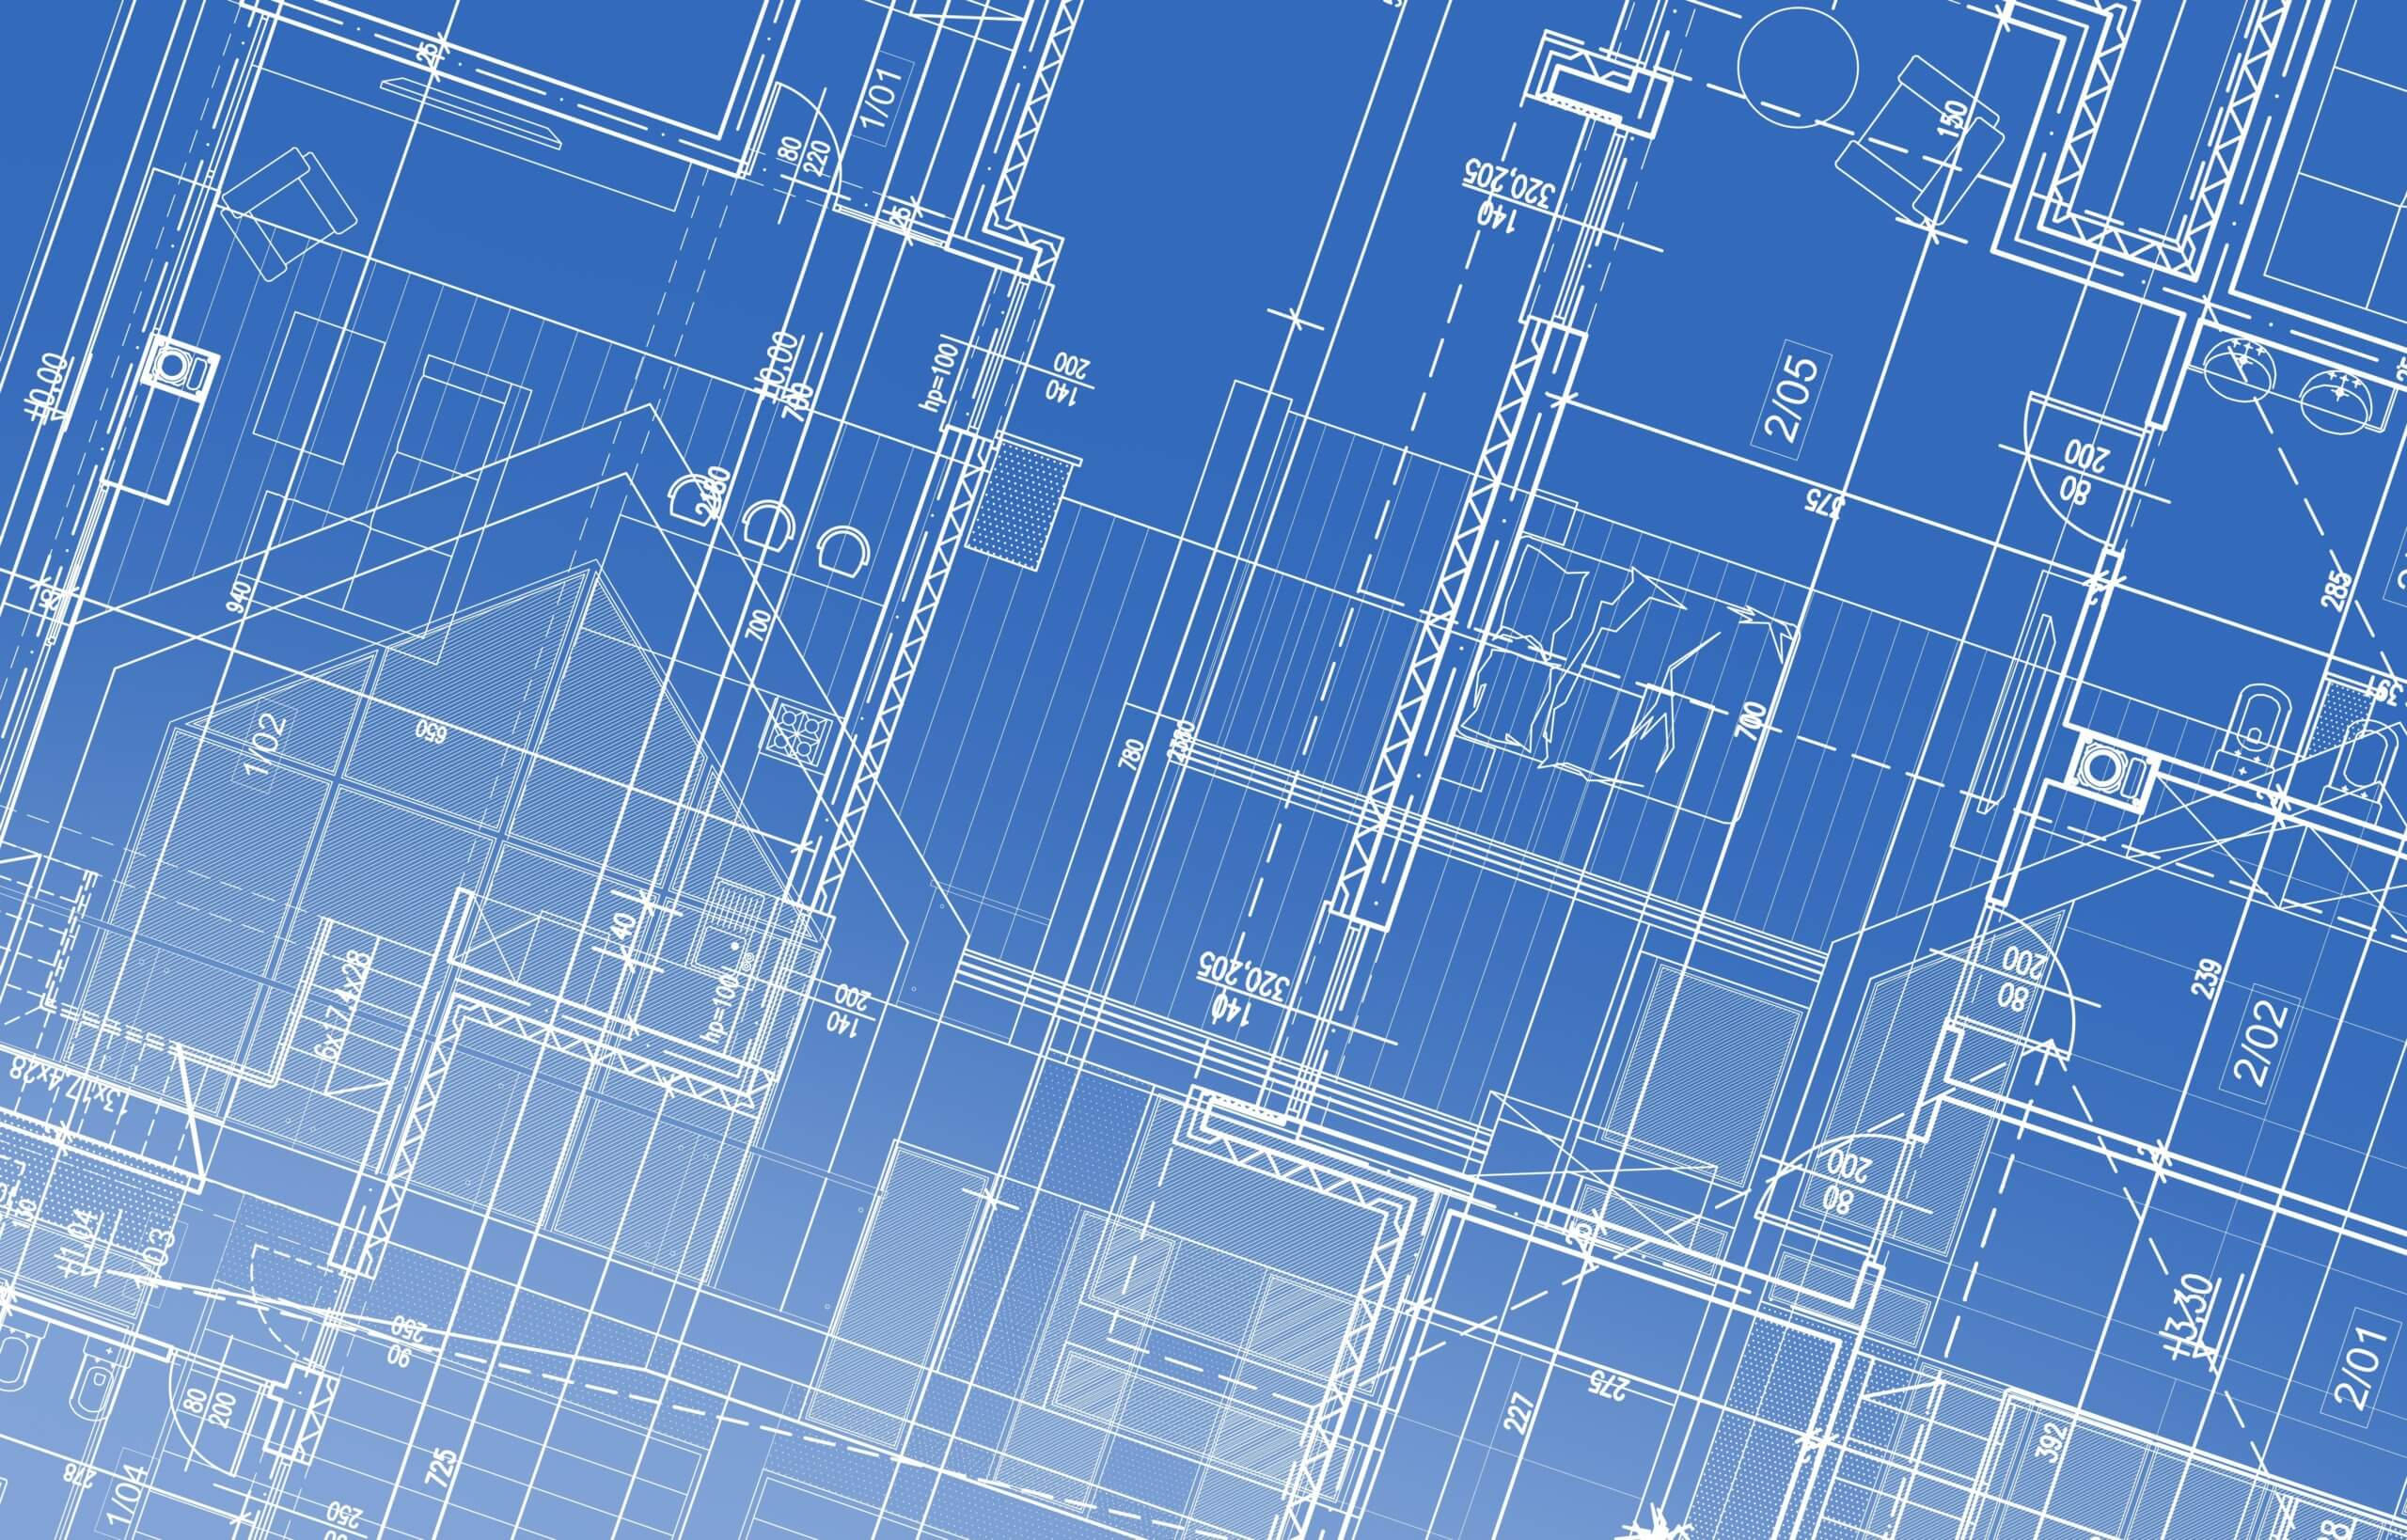 House Project Blueprint Background Illustration. Architectural Backdrop